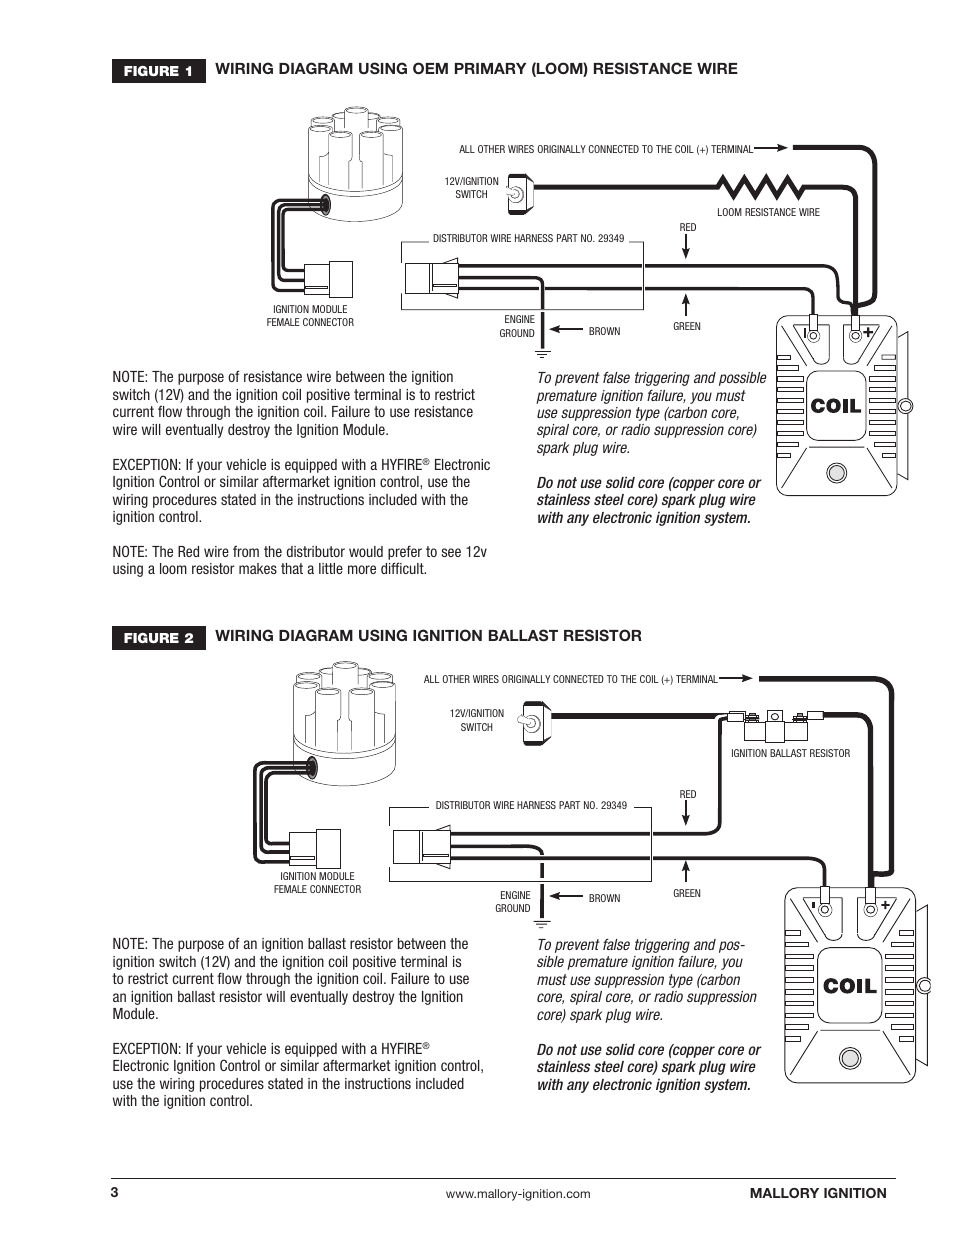 mallory ignition mallory magnetic breakerless distributor ... mallory unilite ignition wiring diagram mallory ignition wiring diagram #13